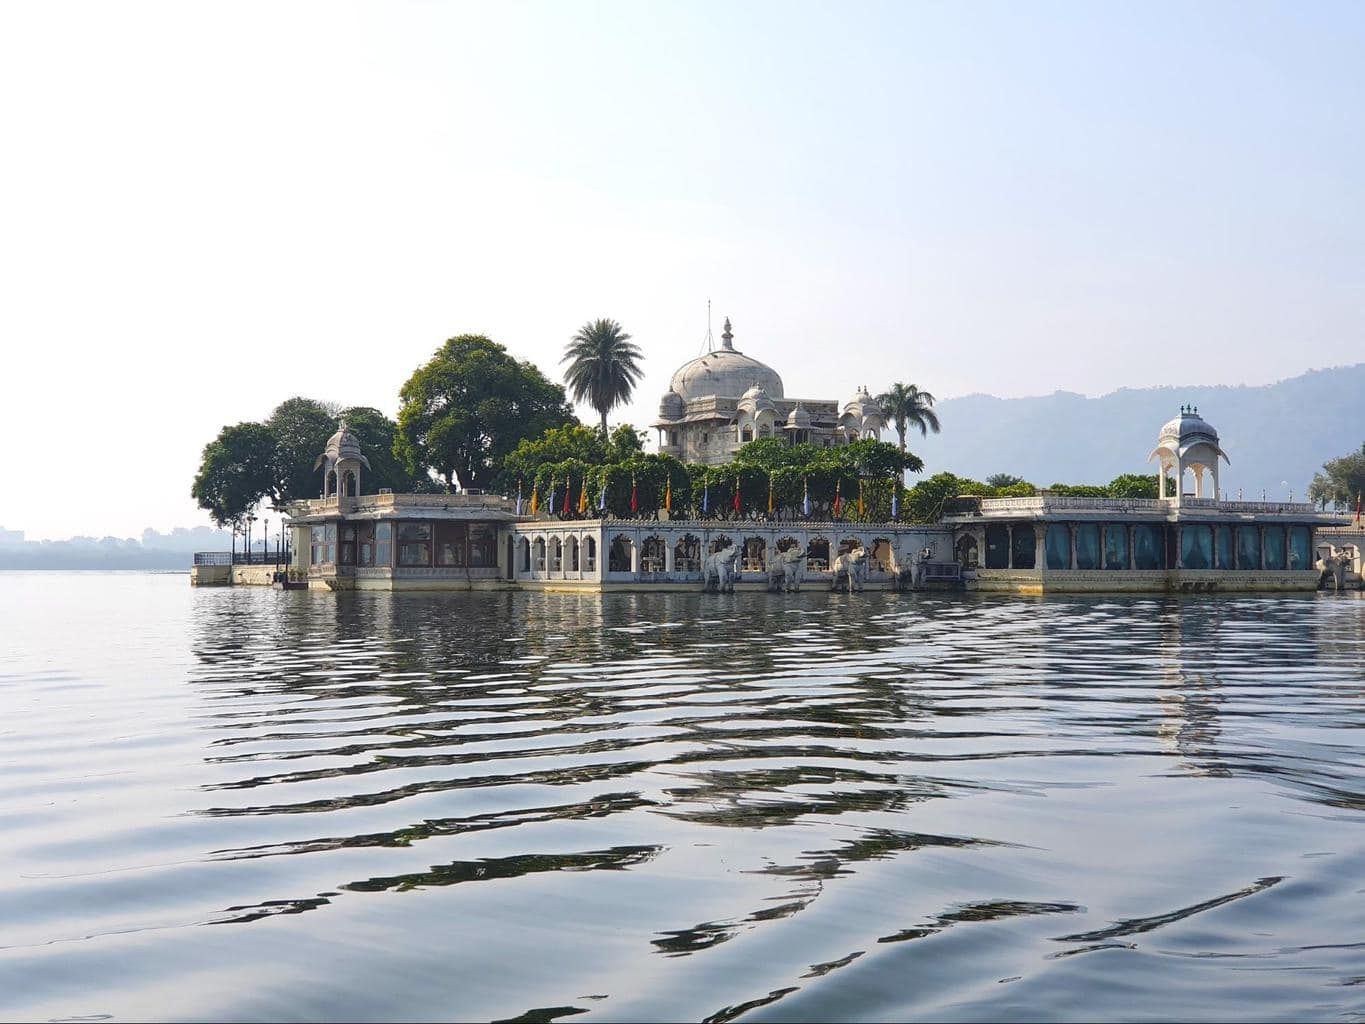 Jagmandir Palace from the water